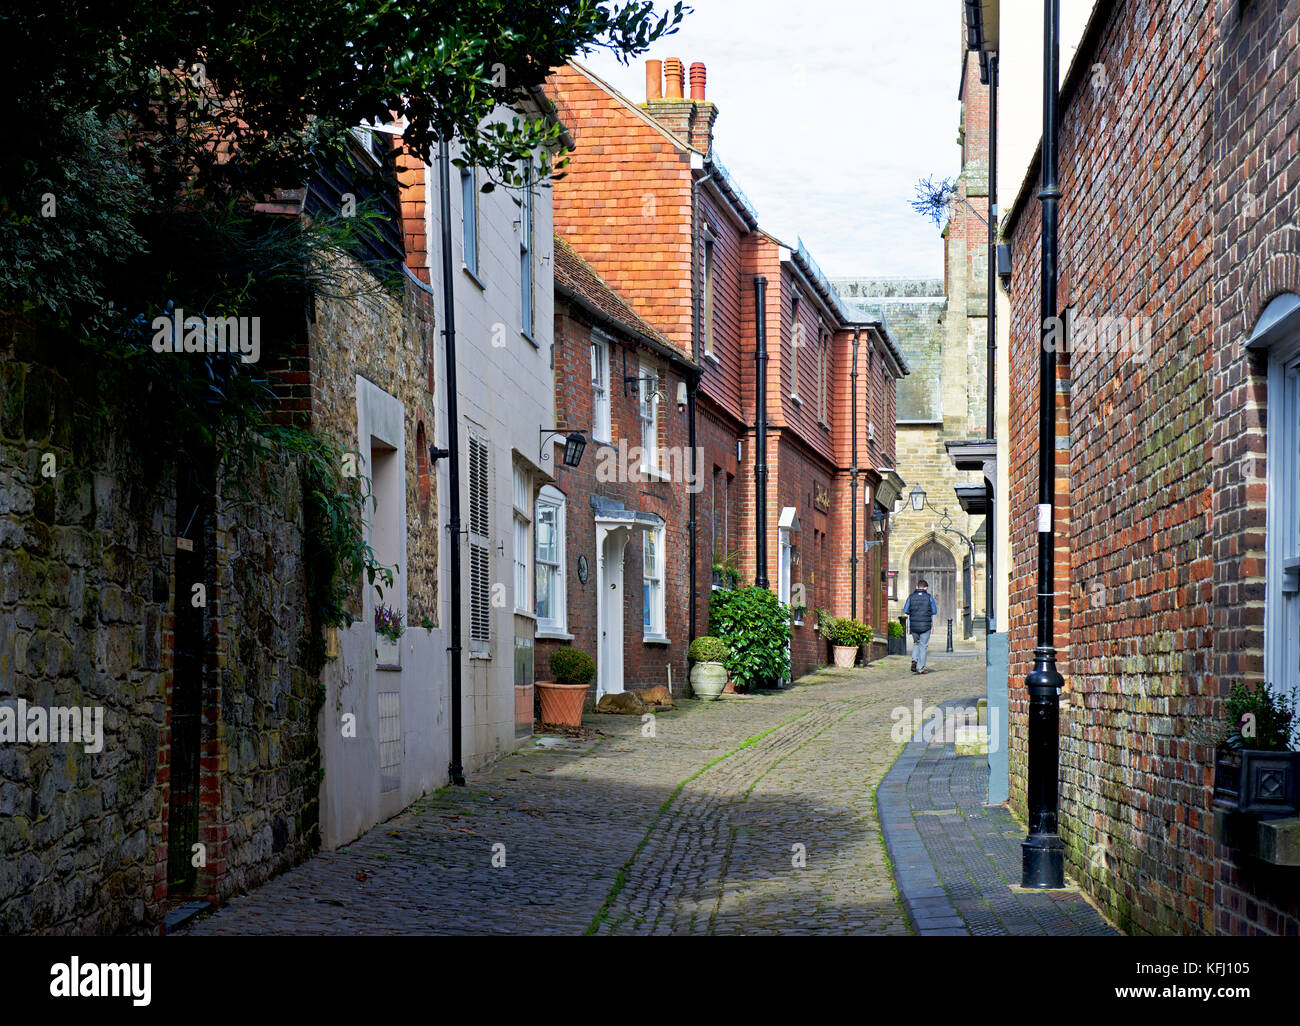 Cobbled Lombard Street in Petworth, a small town in east Sussex, England UK - Stock Image